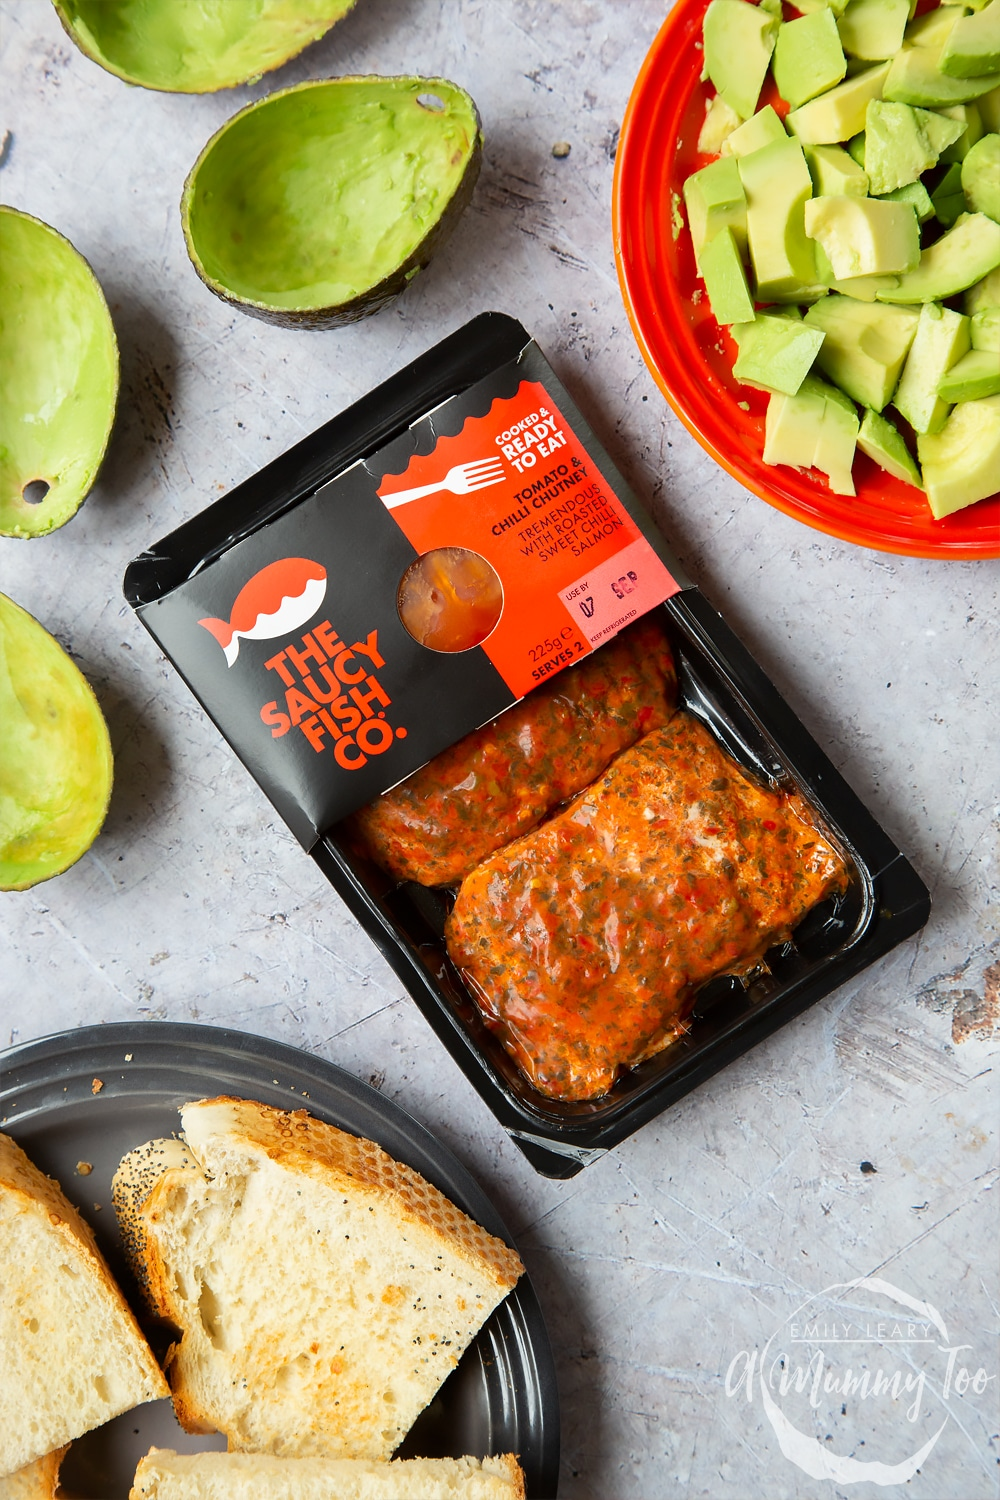 the saucy fish co packet of tomato and chilli chutney which is used to create the sweet chilli salmon